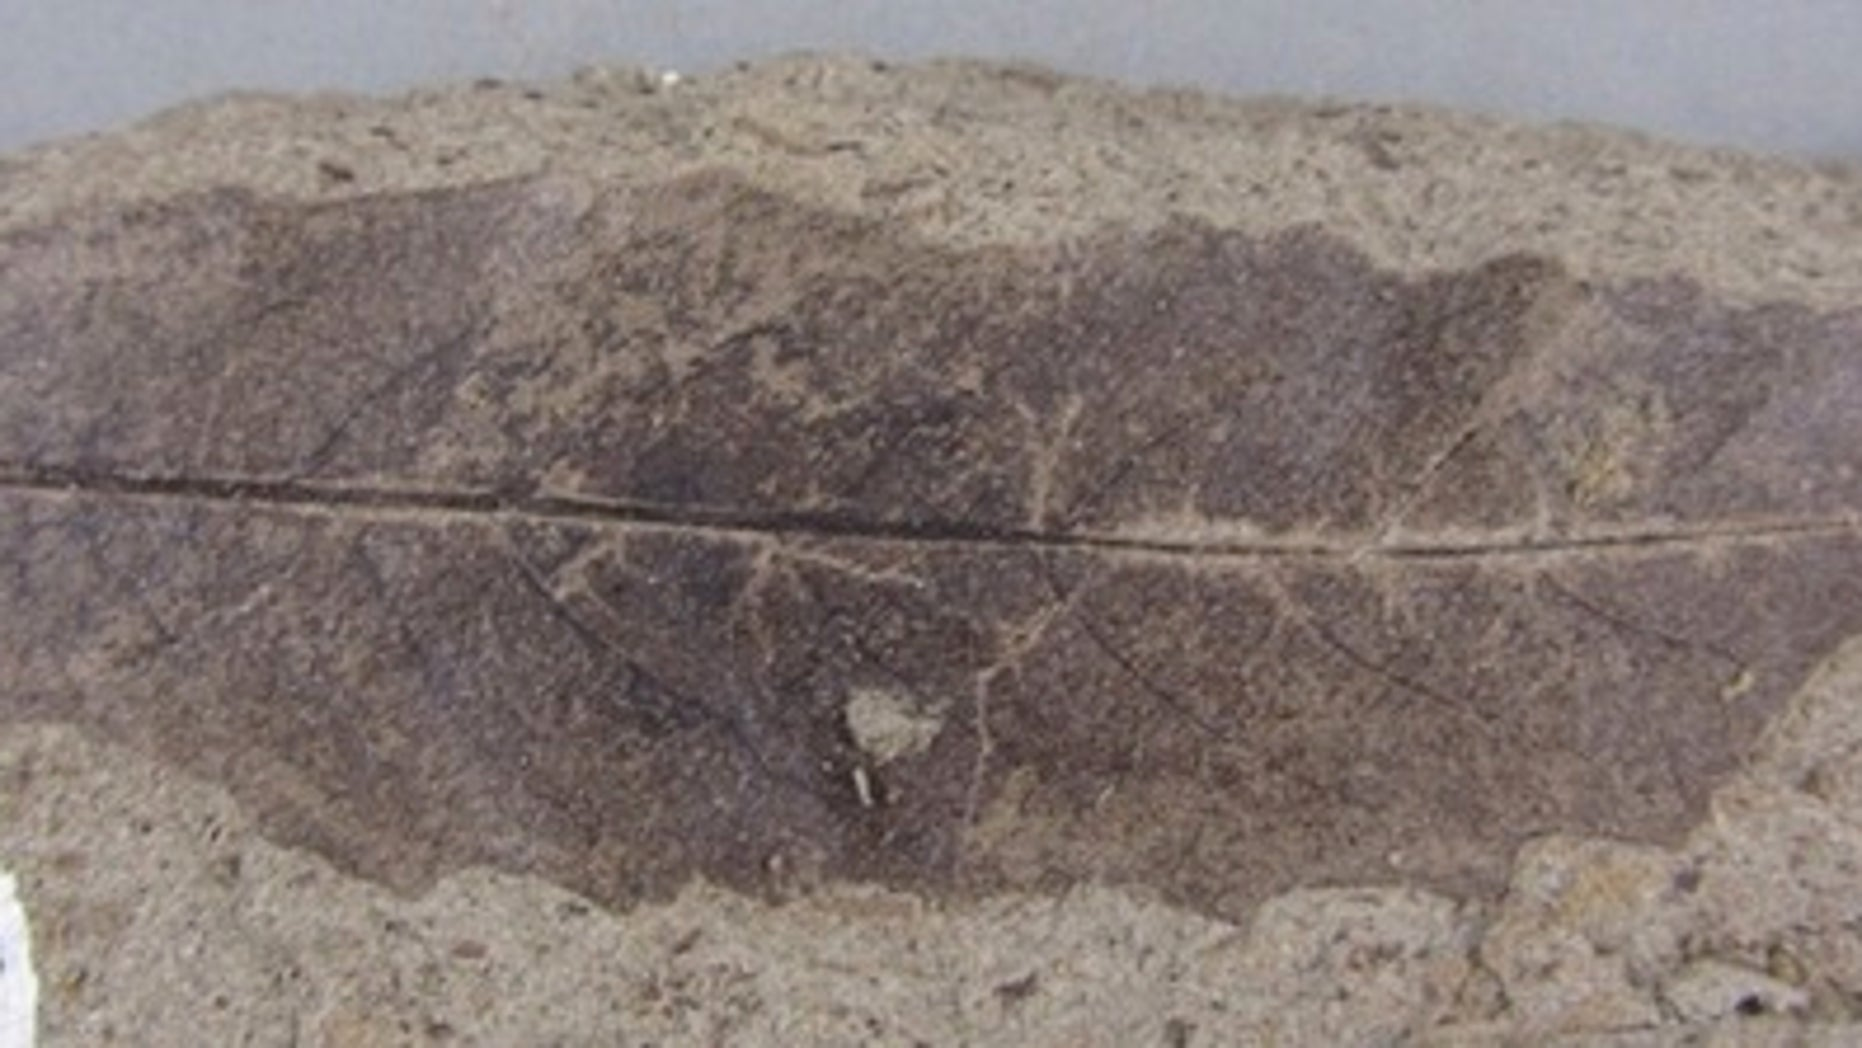 A fossil of a leaf from the Salix genus, which includes willows, found during the study of 66-million-year-old plants in Saskatchewan.